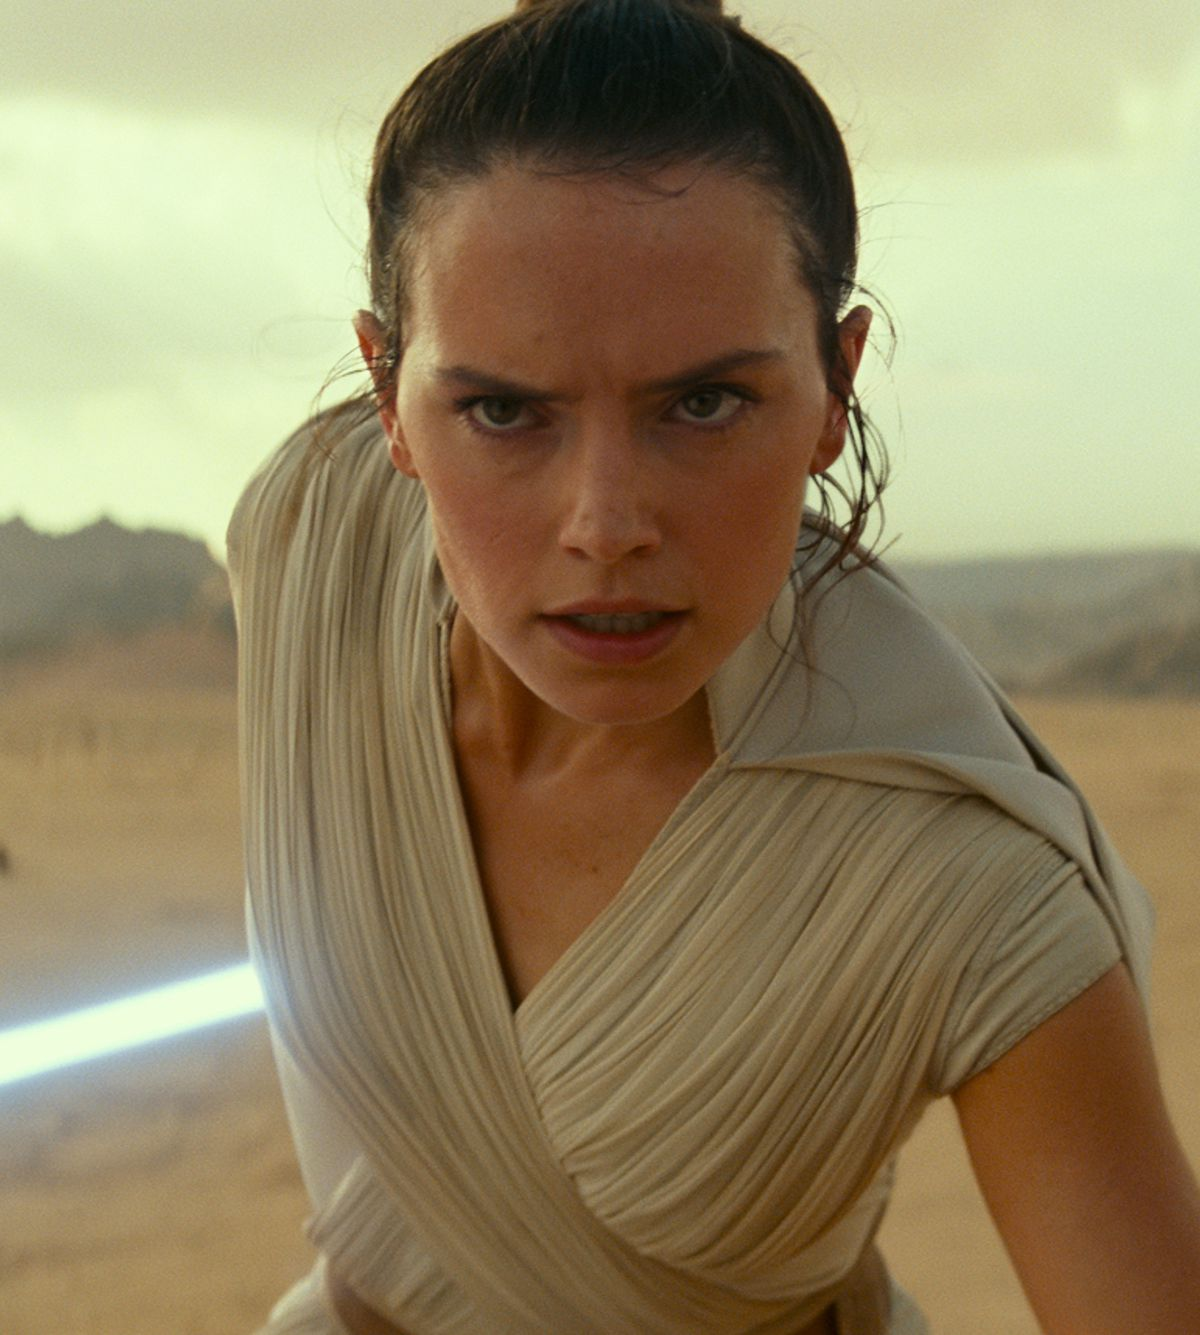 Rey, with lightsaber out, prepares for a fight on a desert planet in Star Wars: The Rise of Skywalker